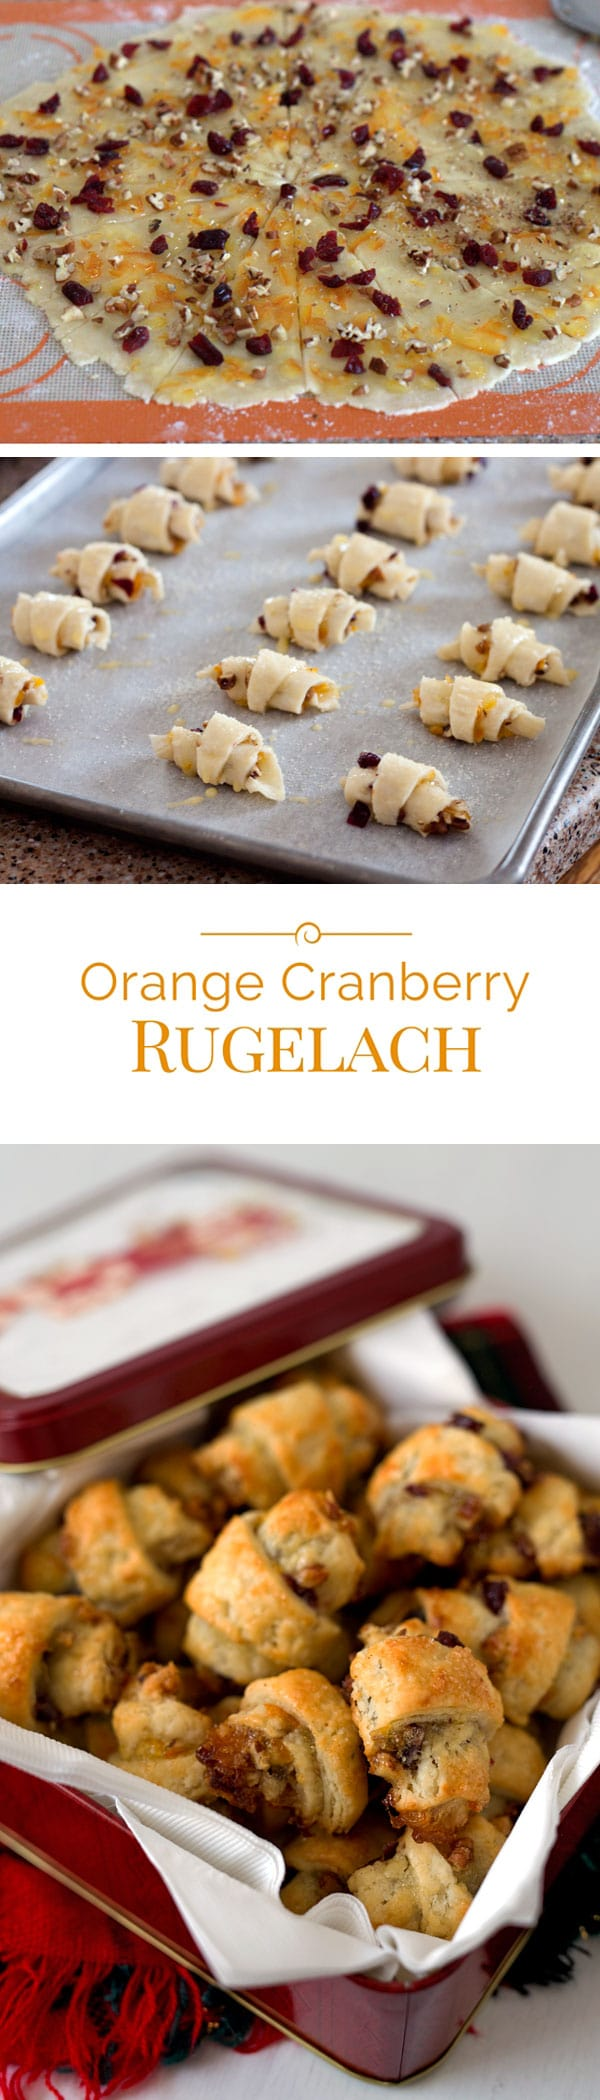 Orange Cranberry Rugelach is a crisp, flaky pastry spread with orange ...